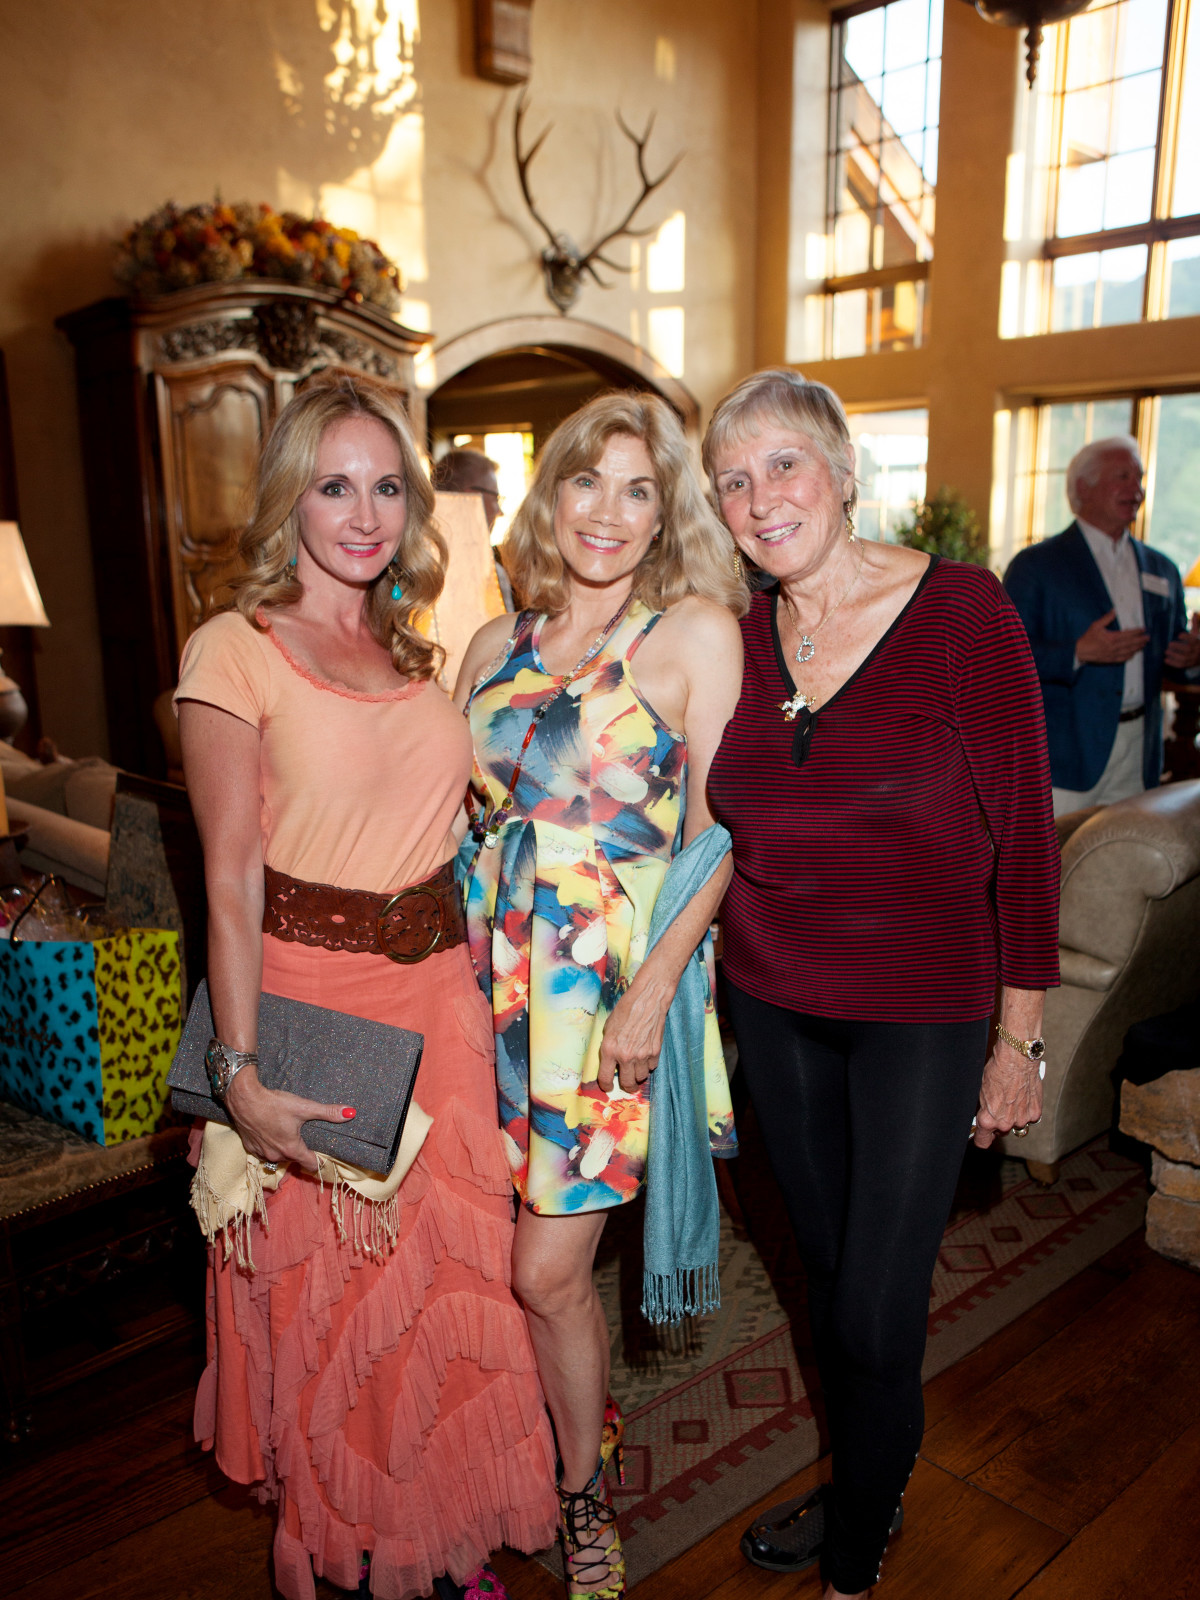 Houston, St. Luke's Foundation Summer Speaker Series Aspen, August 2015, Sharin Norman, Barbi Benton-Gradow, Helga Matuska